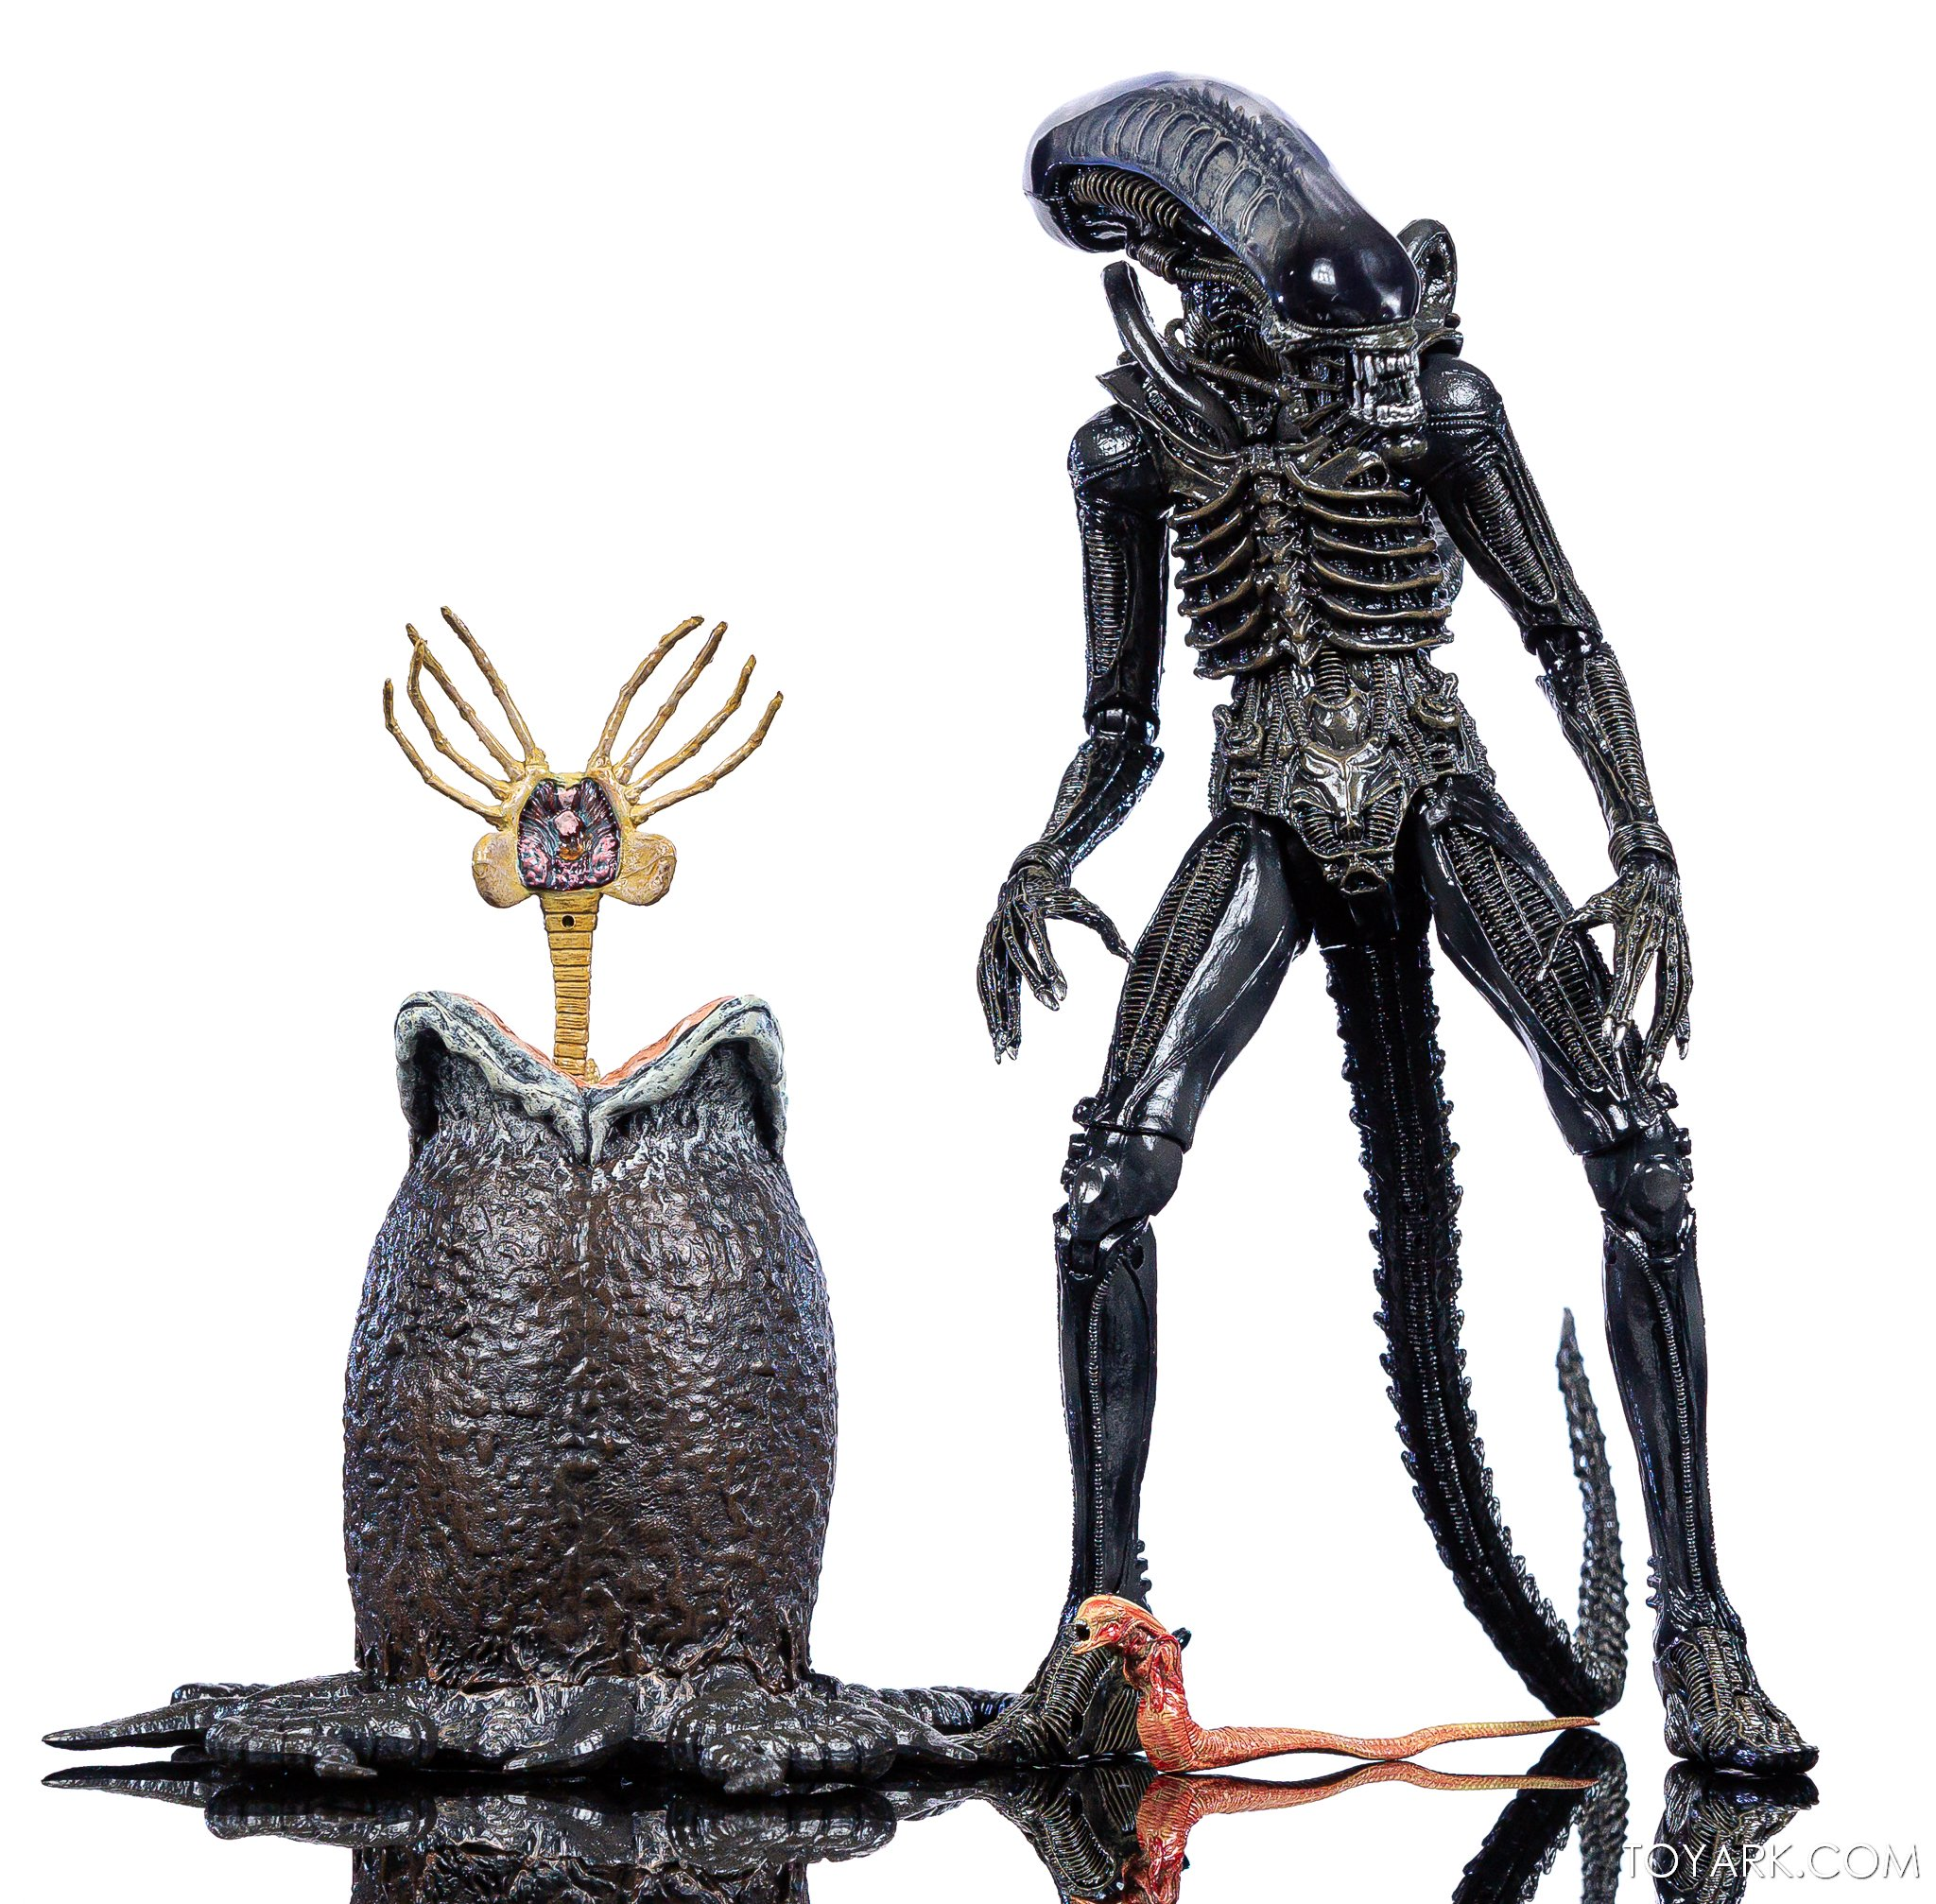 https://news.toyark.com/wp-content/uploads/sites/4/2020/01/NECA-Big-Chap-Alien-Ultimate-031.jpg